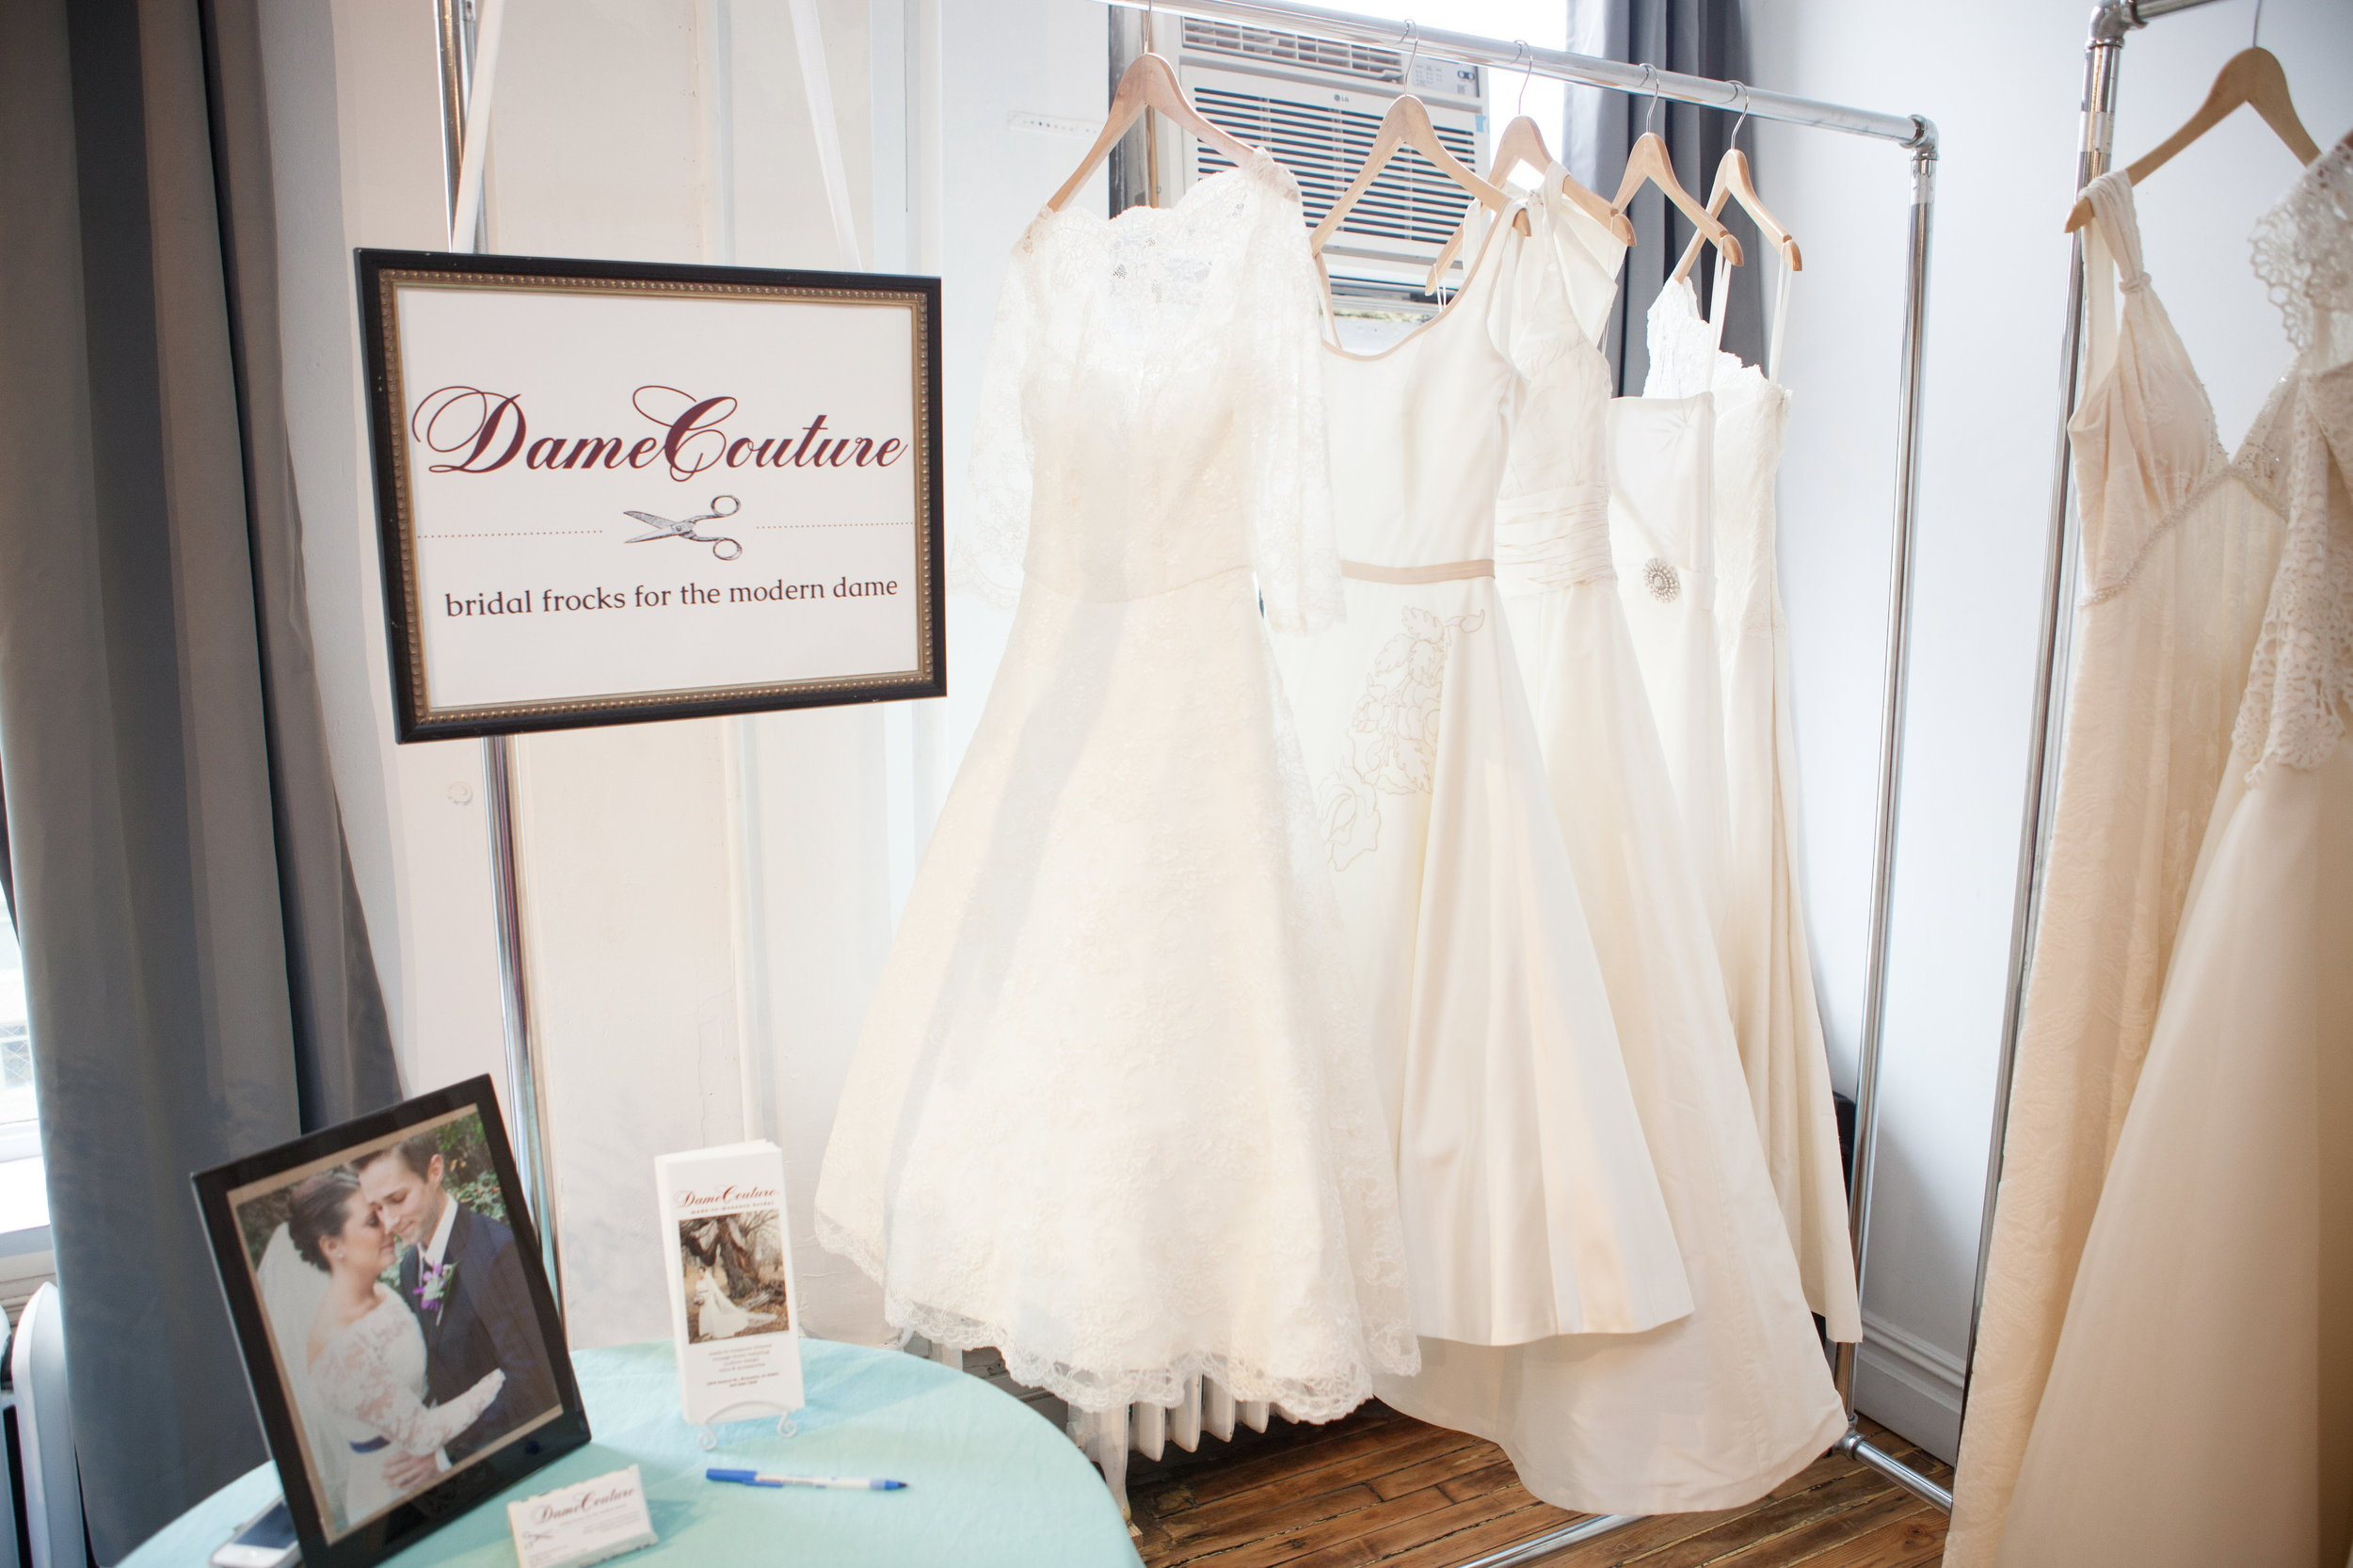 Dame Couture , she is from Chicago and makes lovely vintage inspired dresses, check her  out !